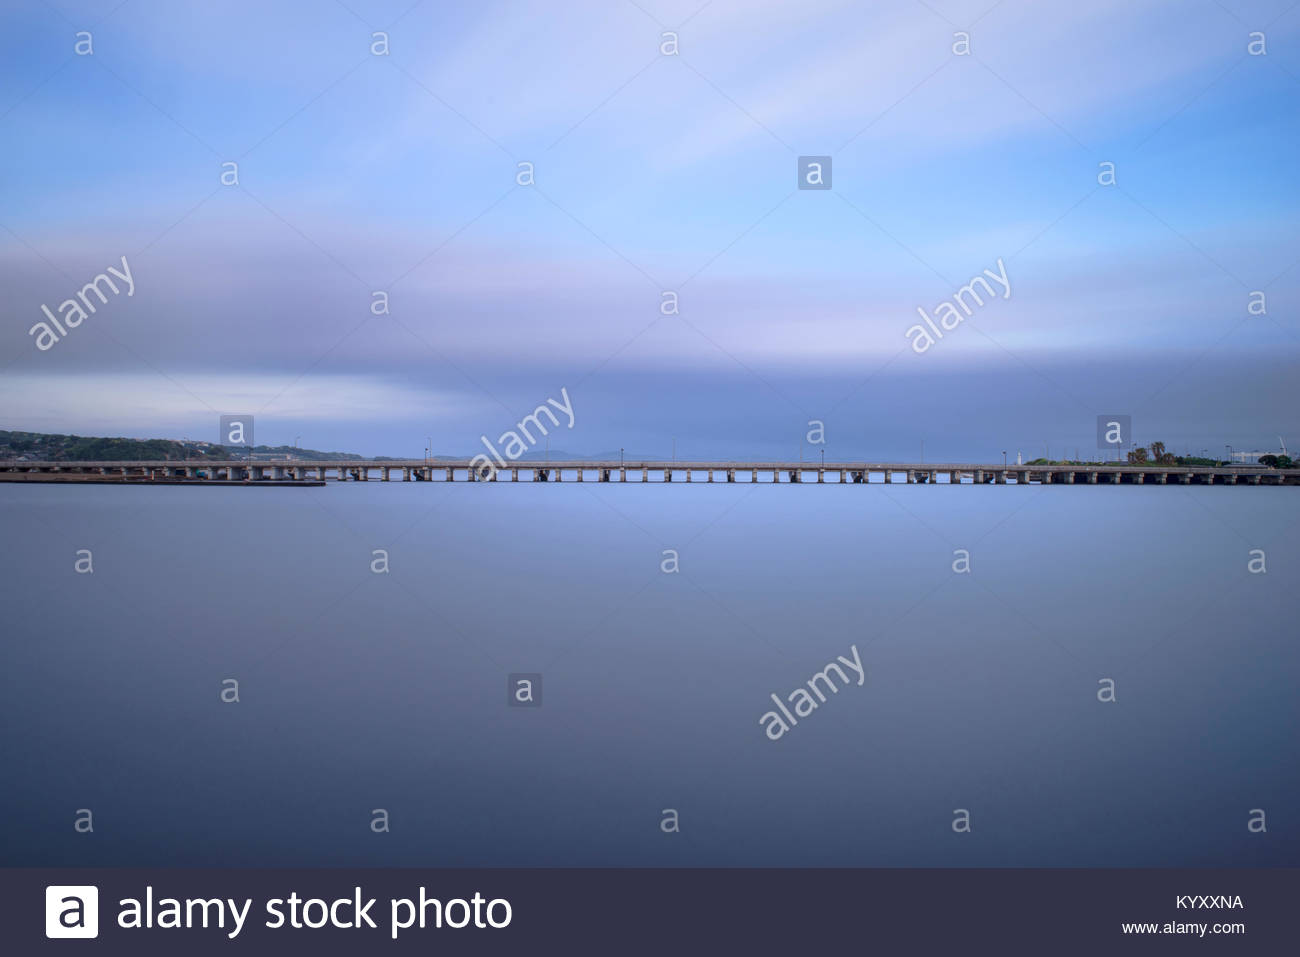 Scenic view of bridge over sea against cloudy sky - Stock Image